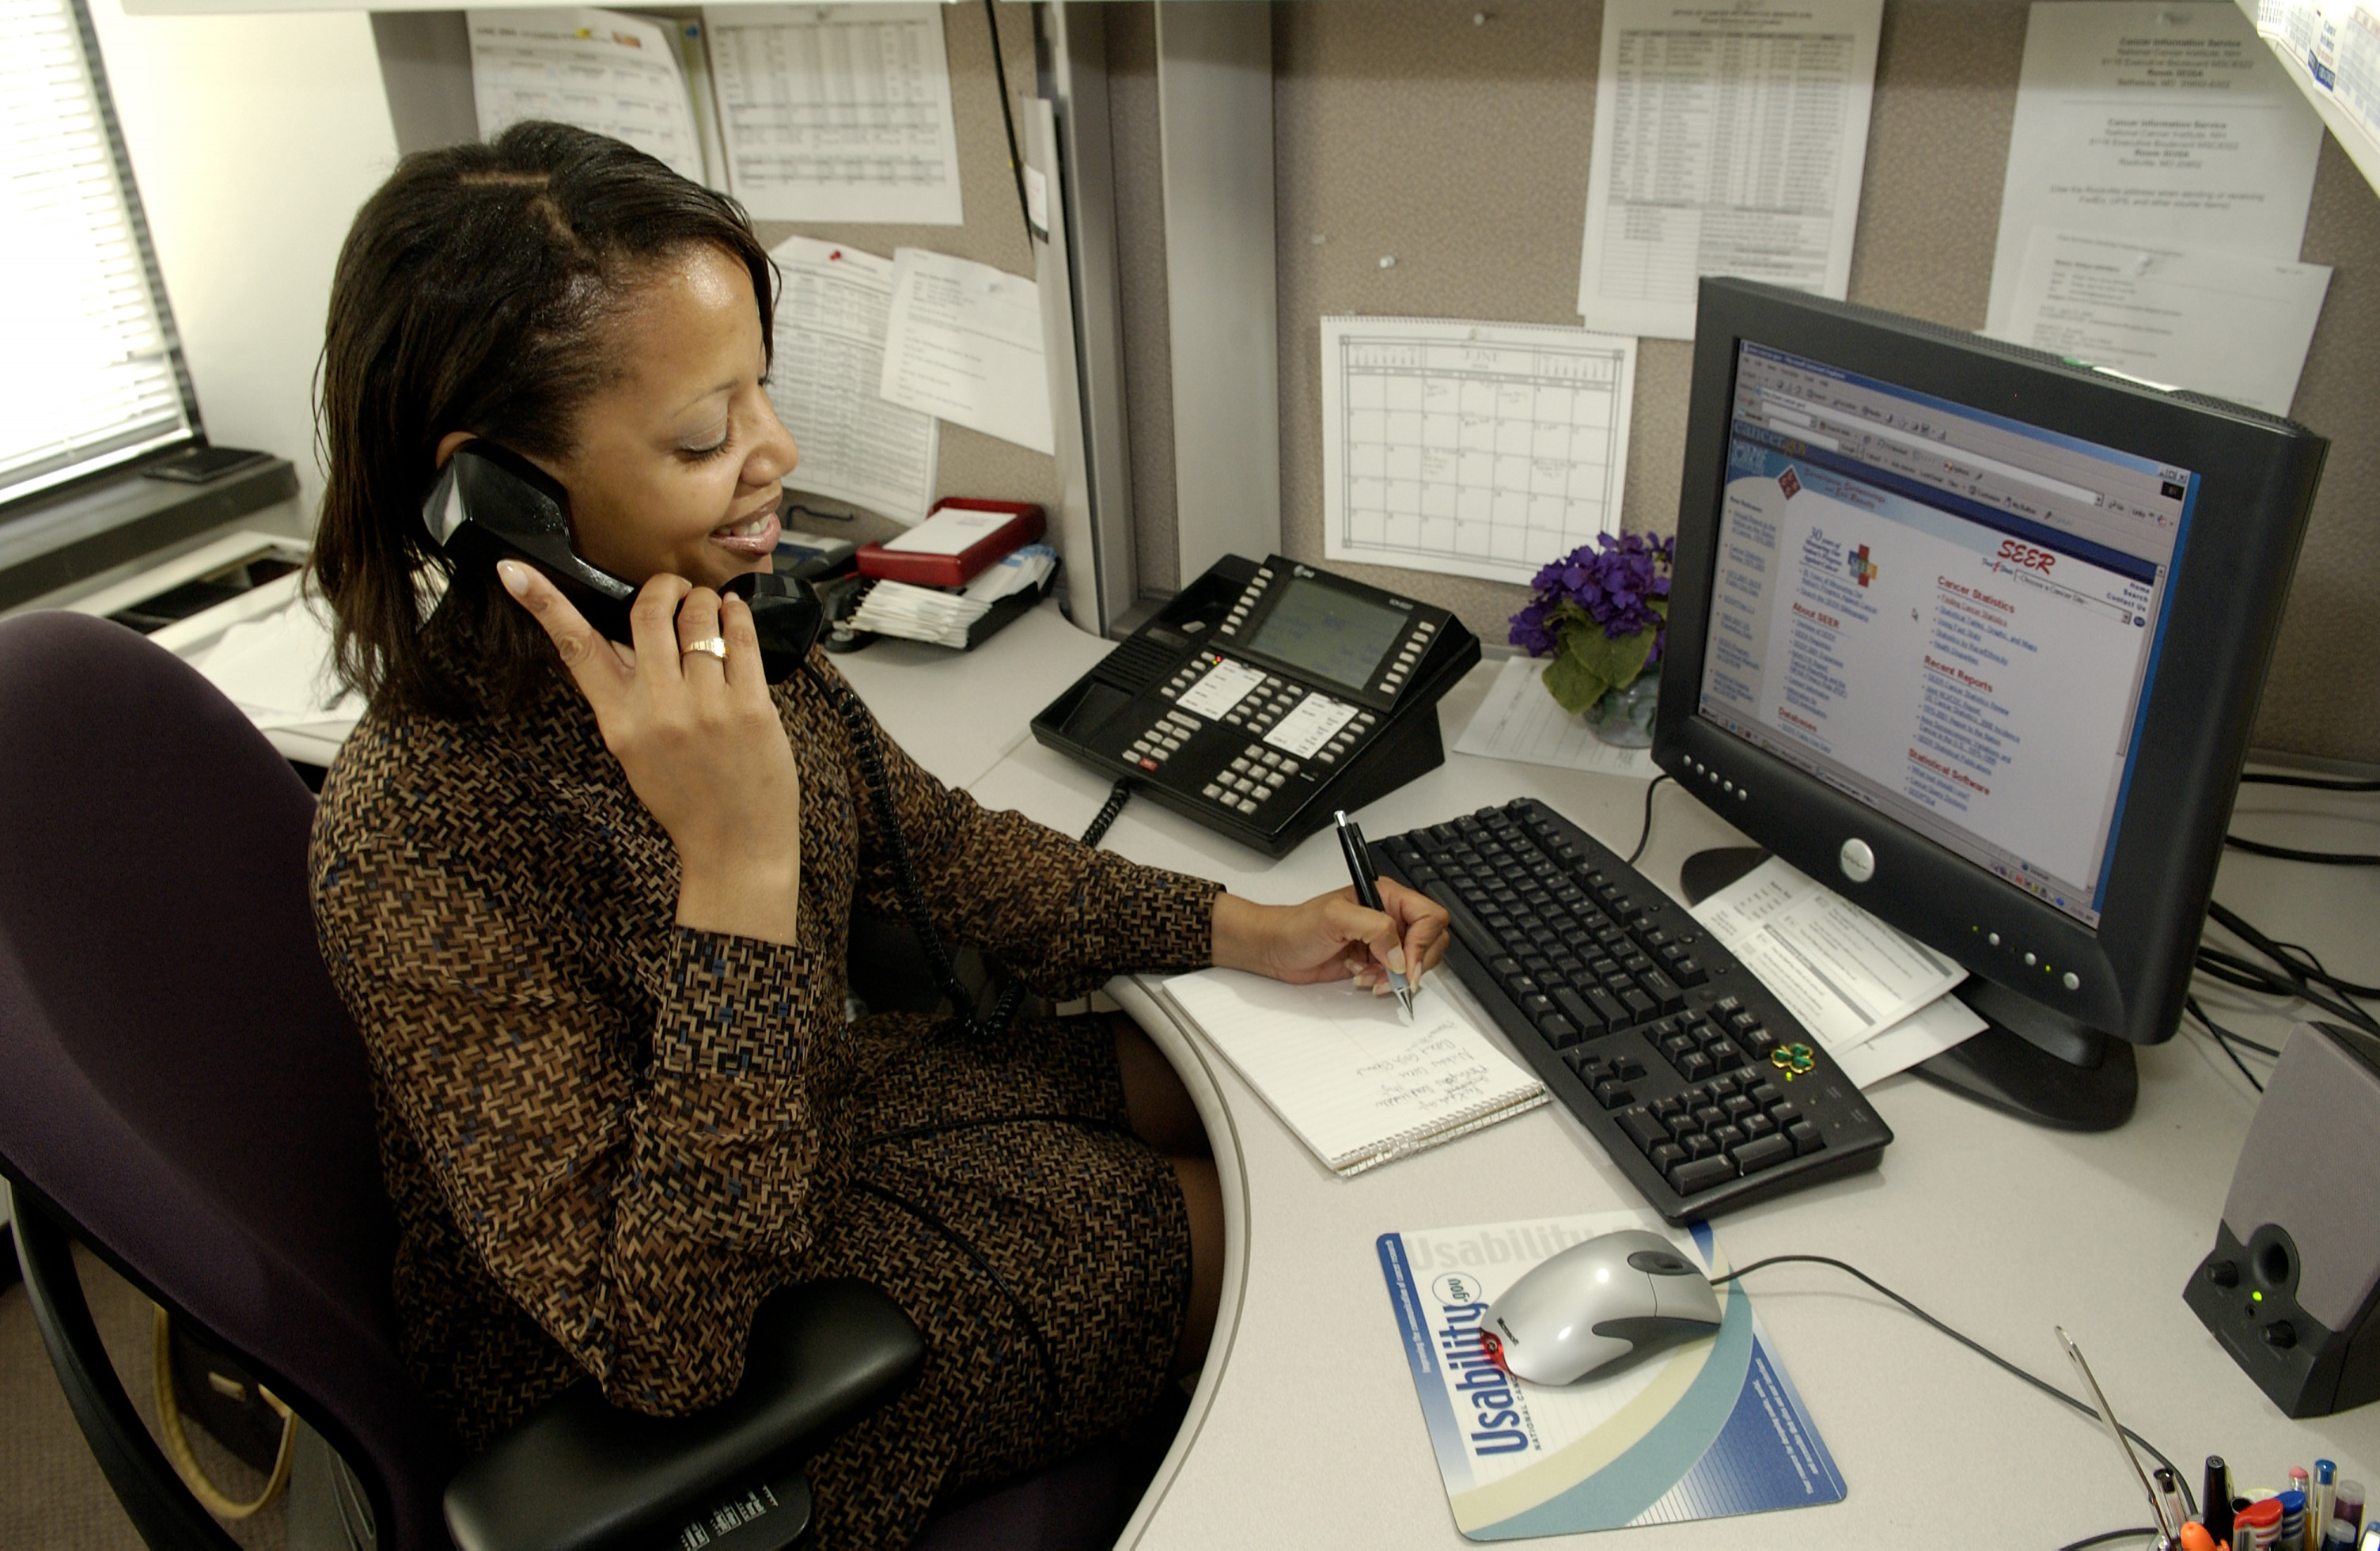 African American Woman Working at Desk